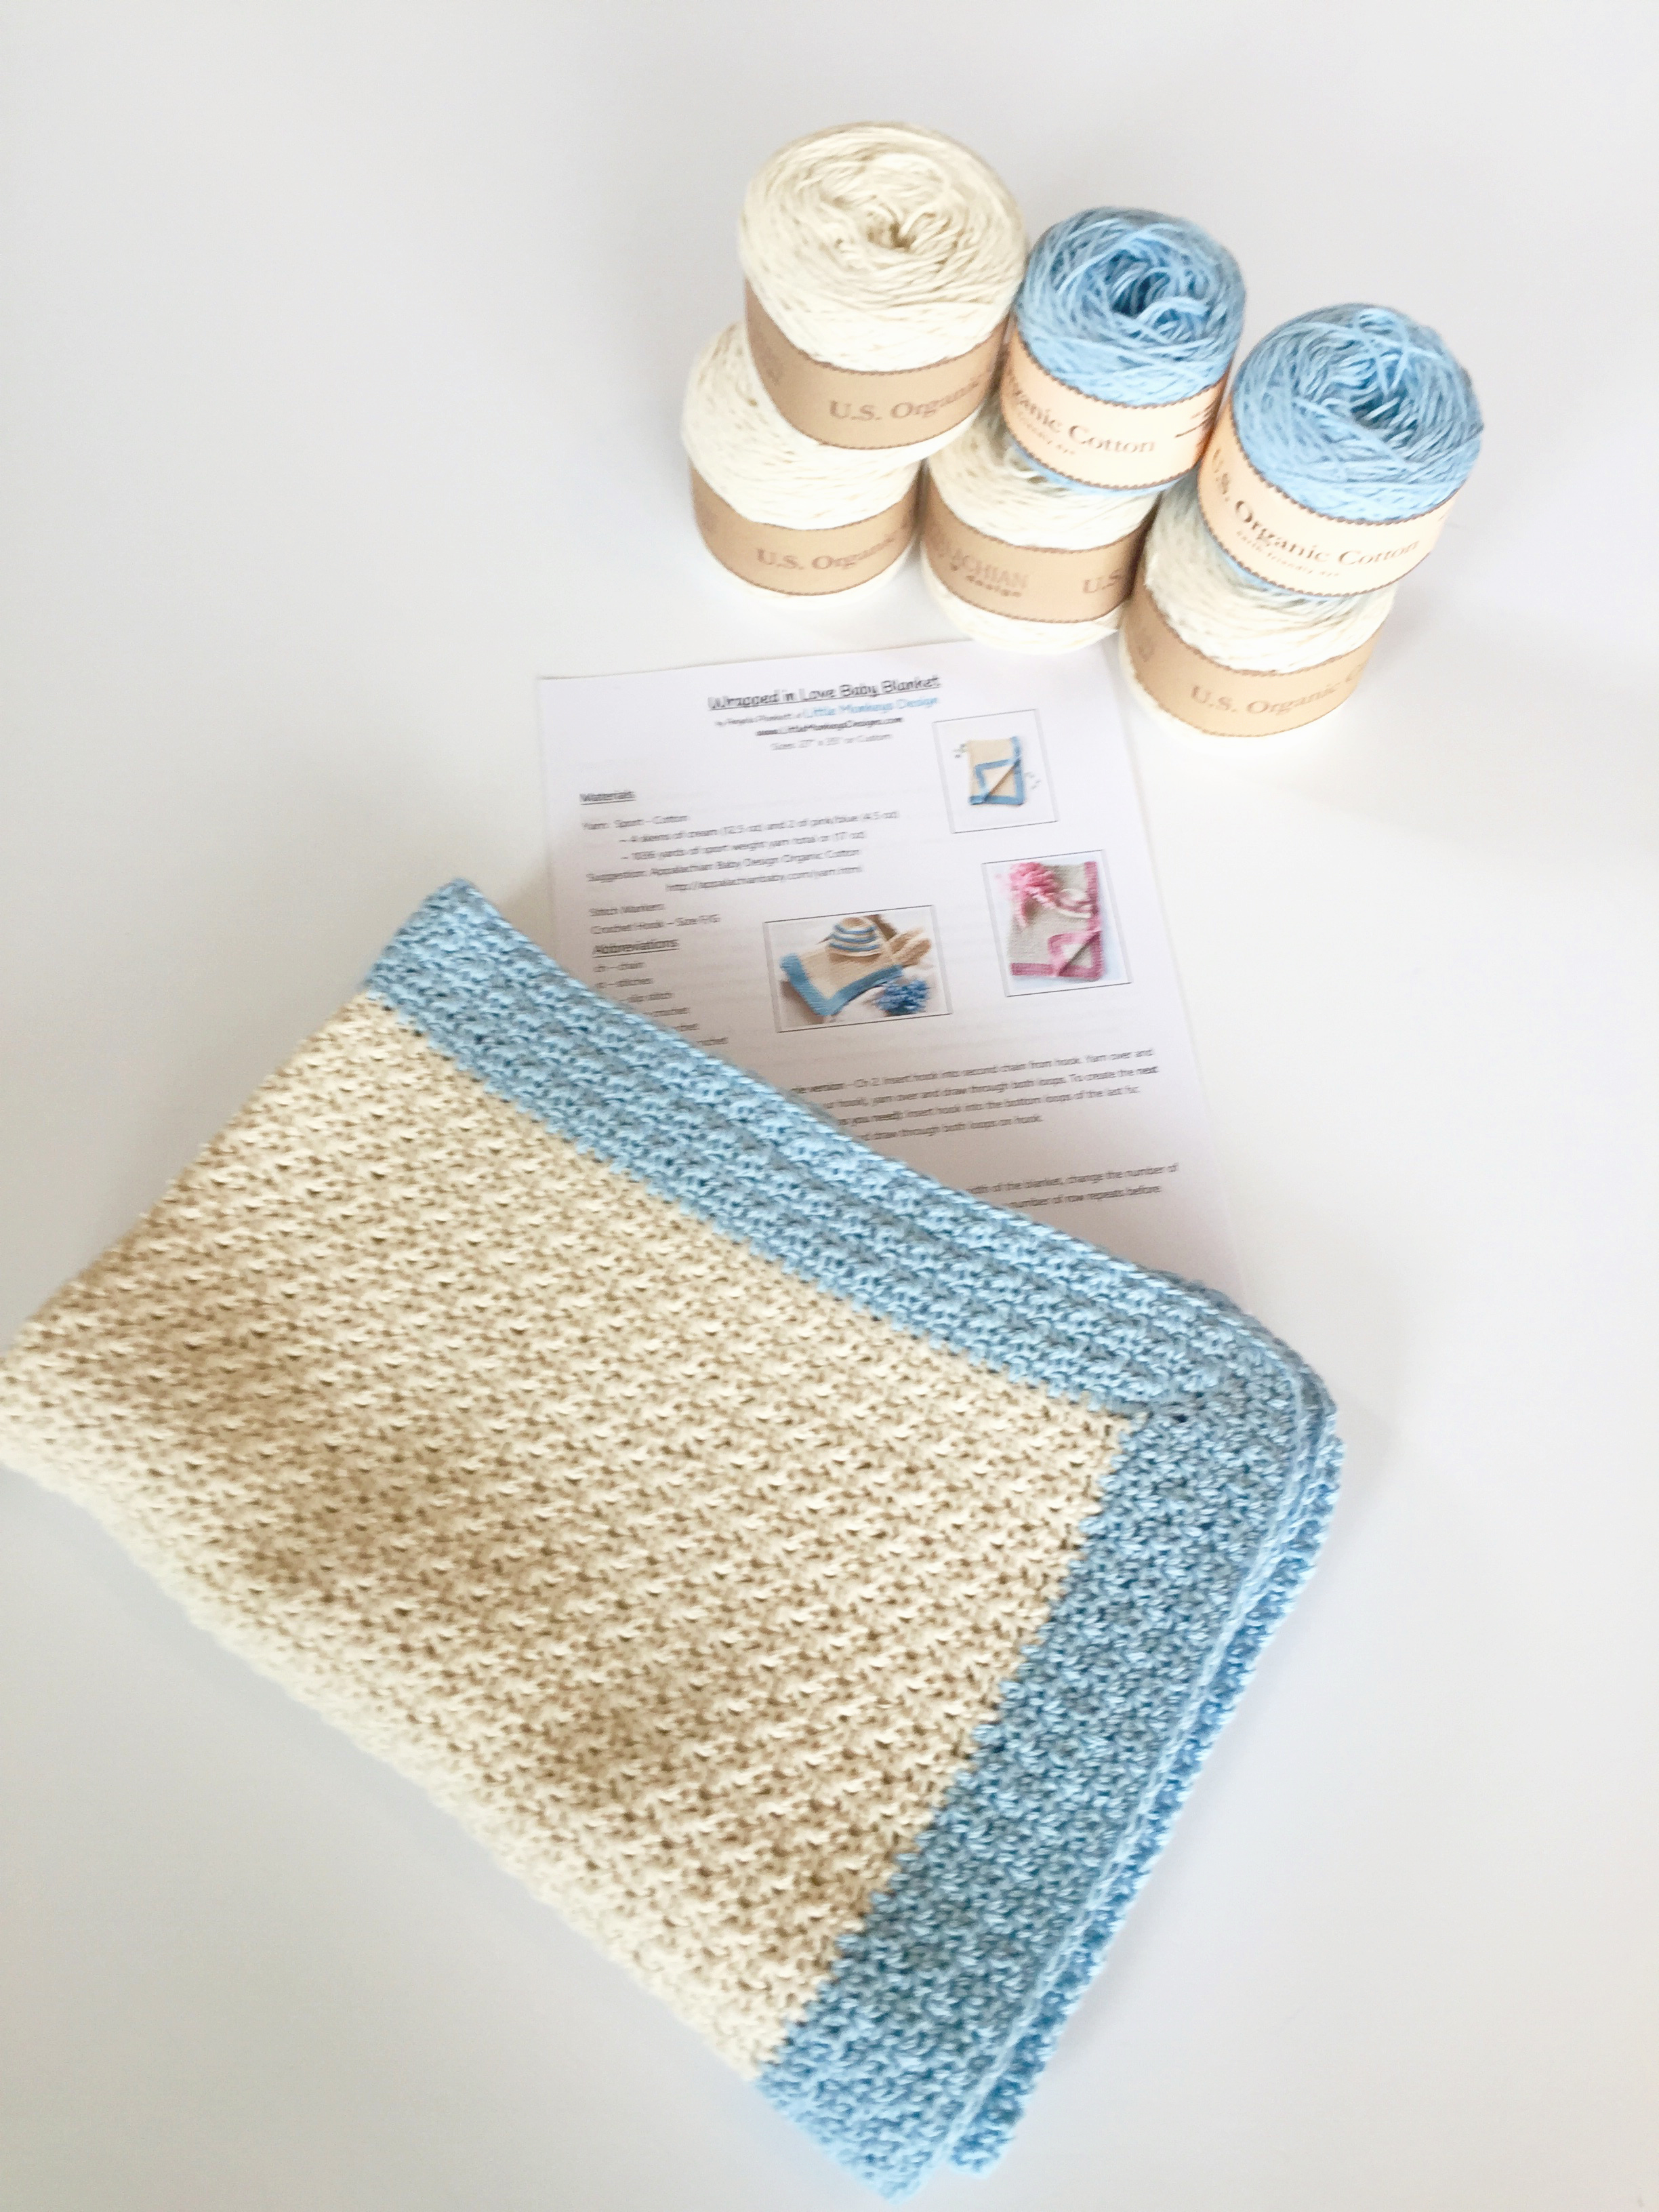 Crochet Patterns Kits : ... Baby Collection / Wrapped in Love Baby Blanket Crochet Pattern Kit